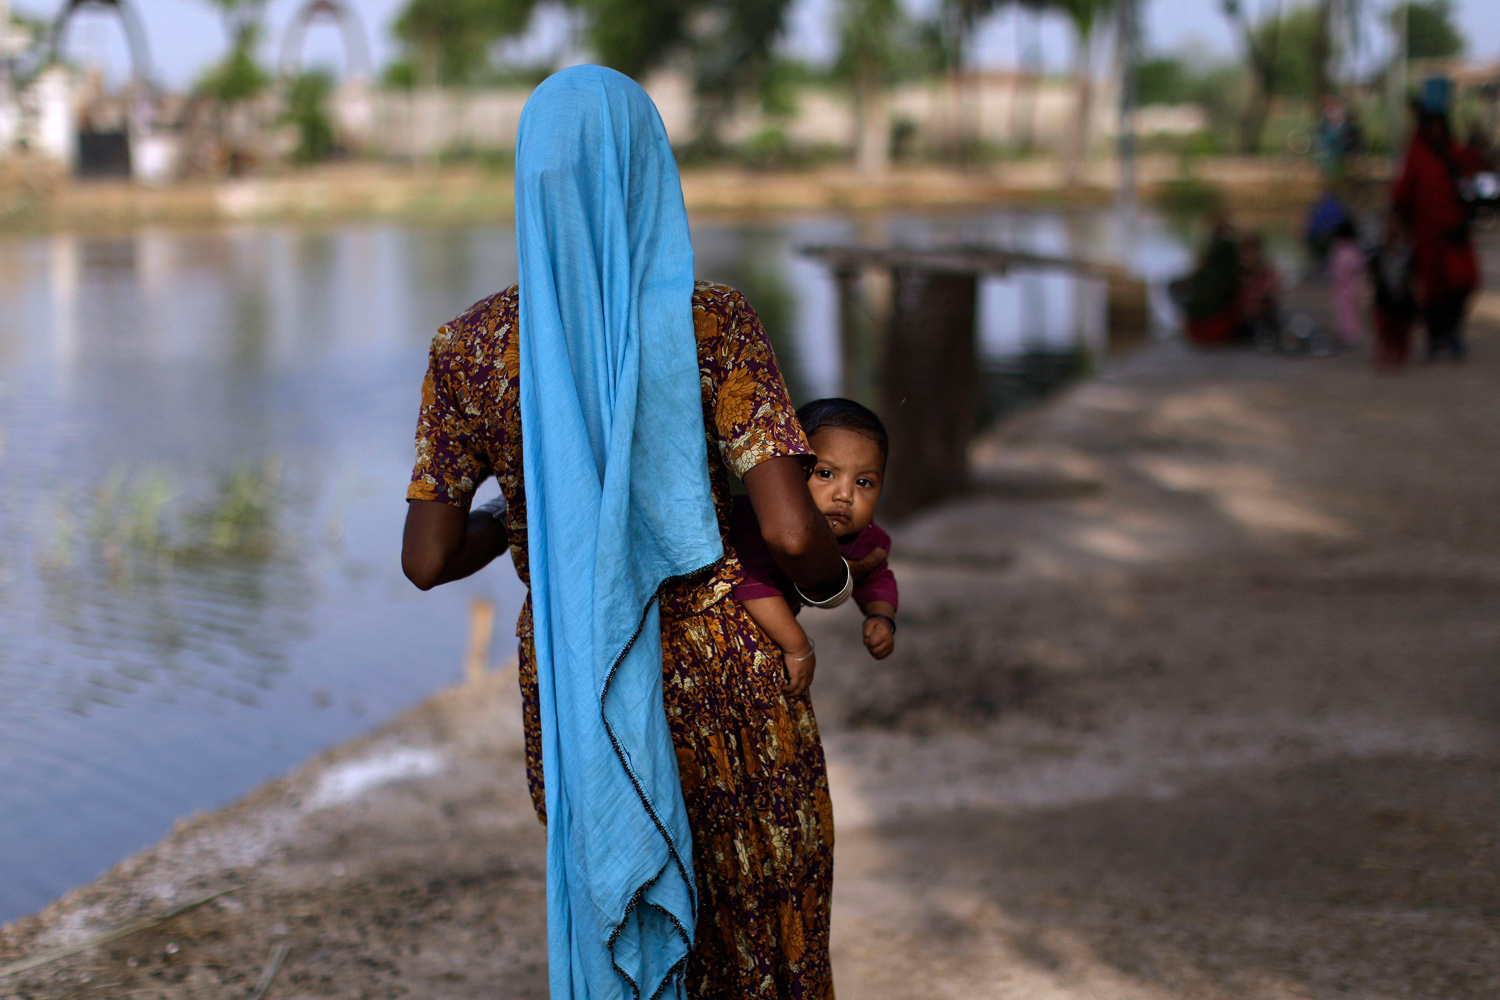 September 22, 2011. A displaced Pakistani child looks on while being held by her mother as they and others take refuge in a college in Tando Muhammad Khan near Hyderabad, Pakistan, after fleeing their flood-hit homes.